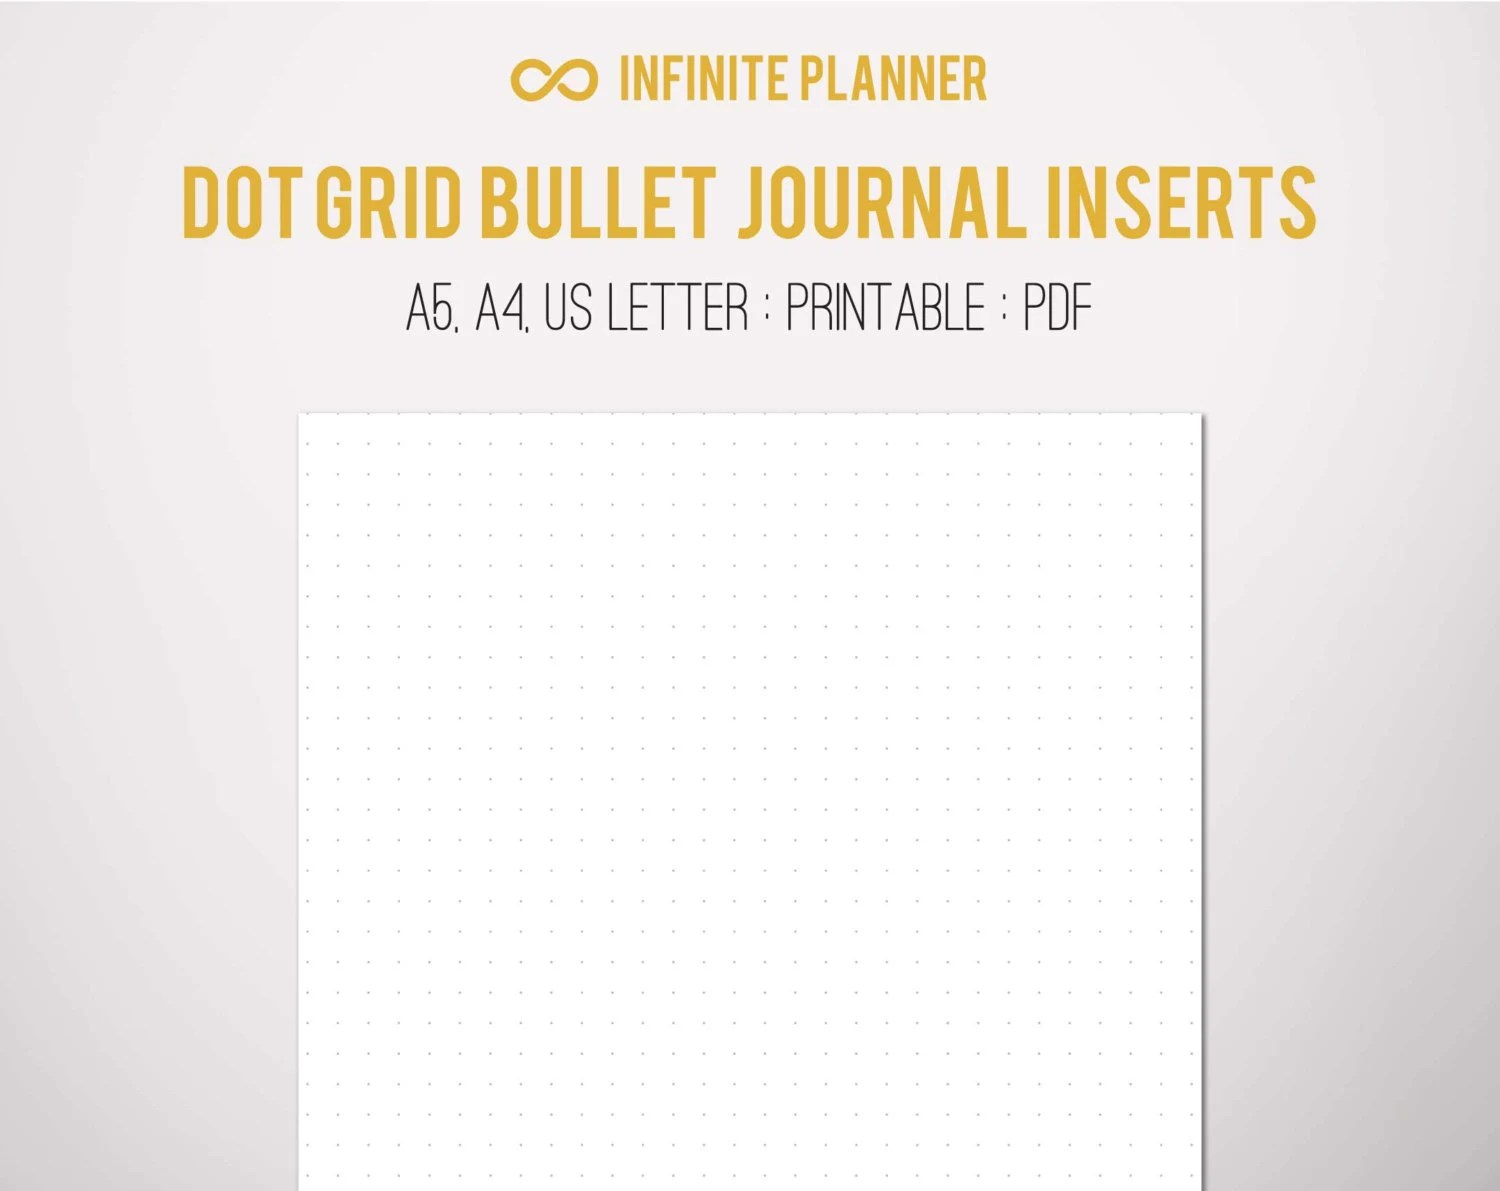 A5 Dot Grid Page Bullet Journal Printable